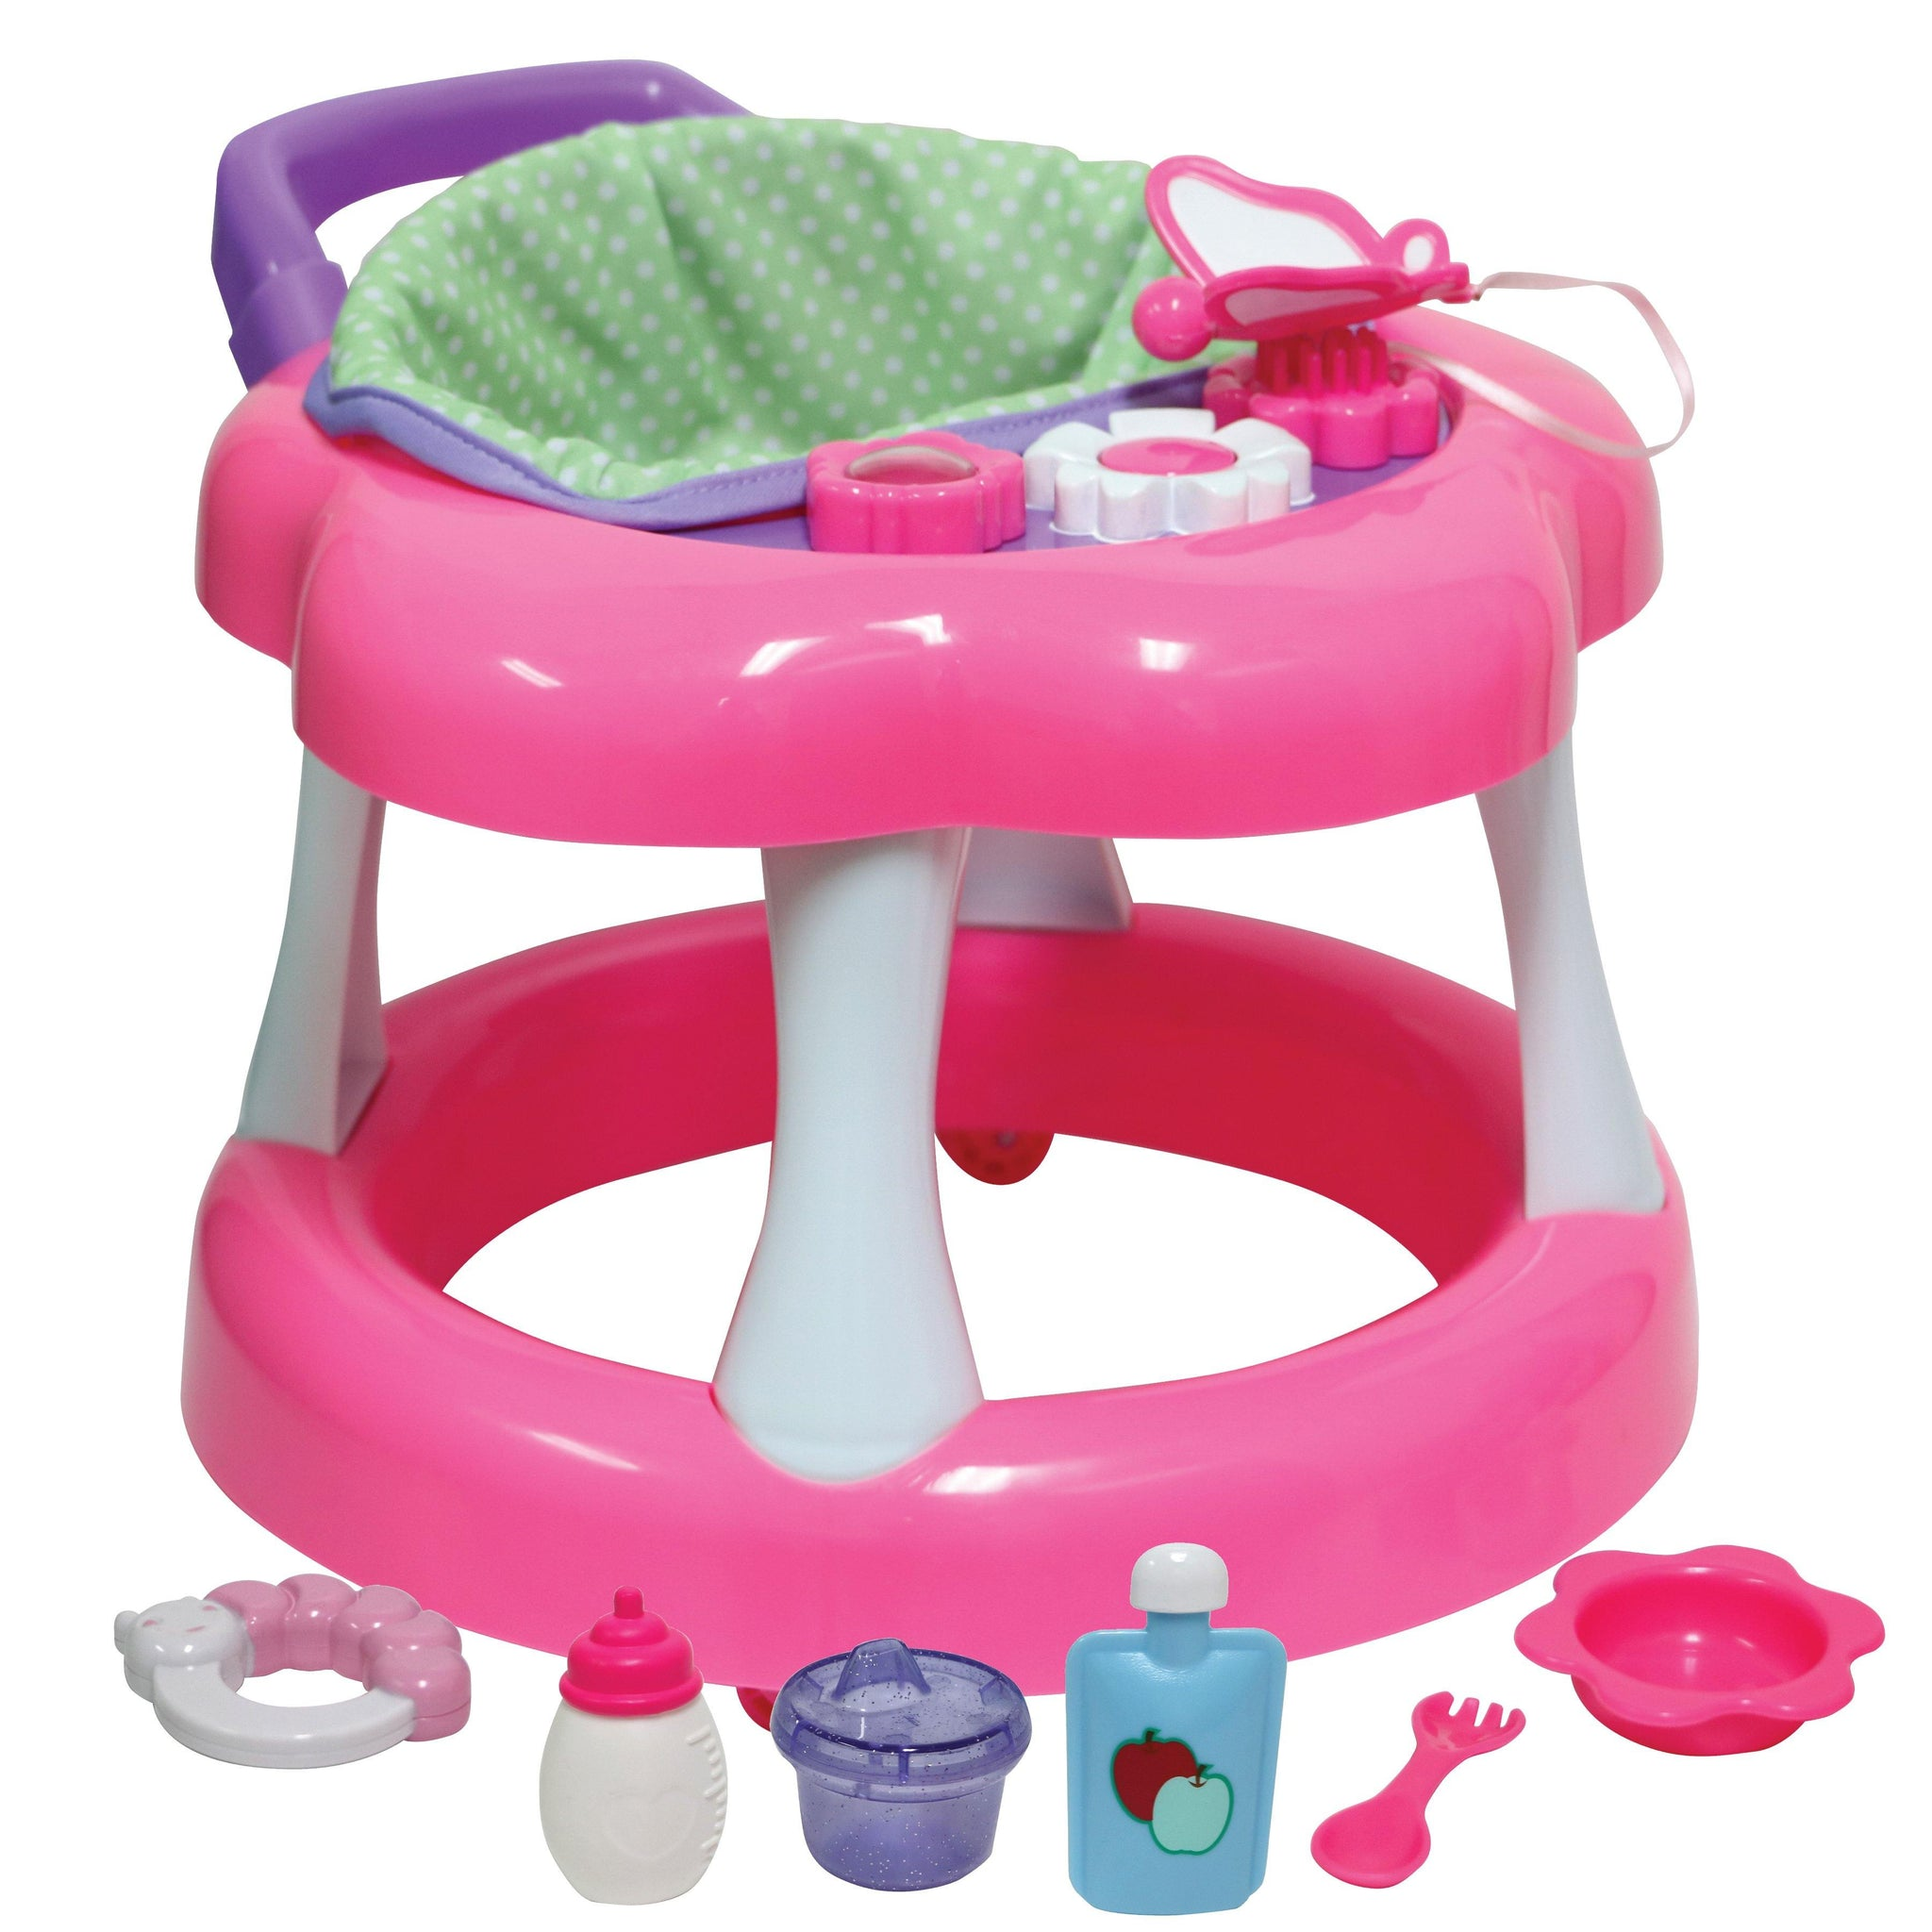 For Keeps! Baby Doll Walker with play accessory for dolls up to 16""